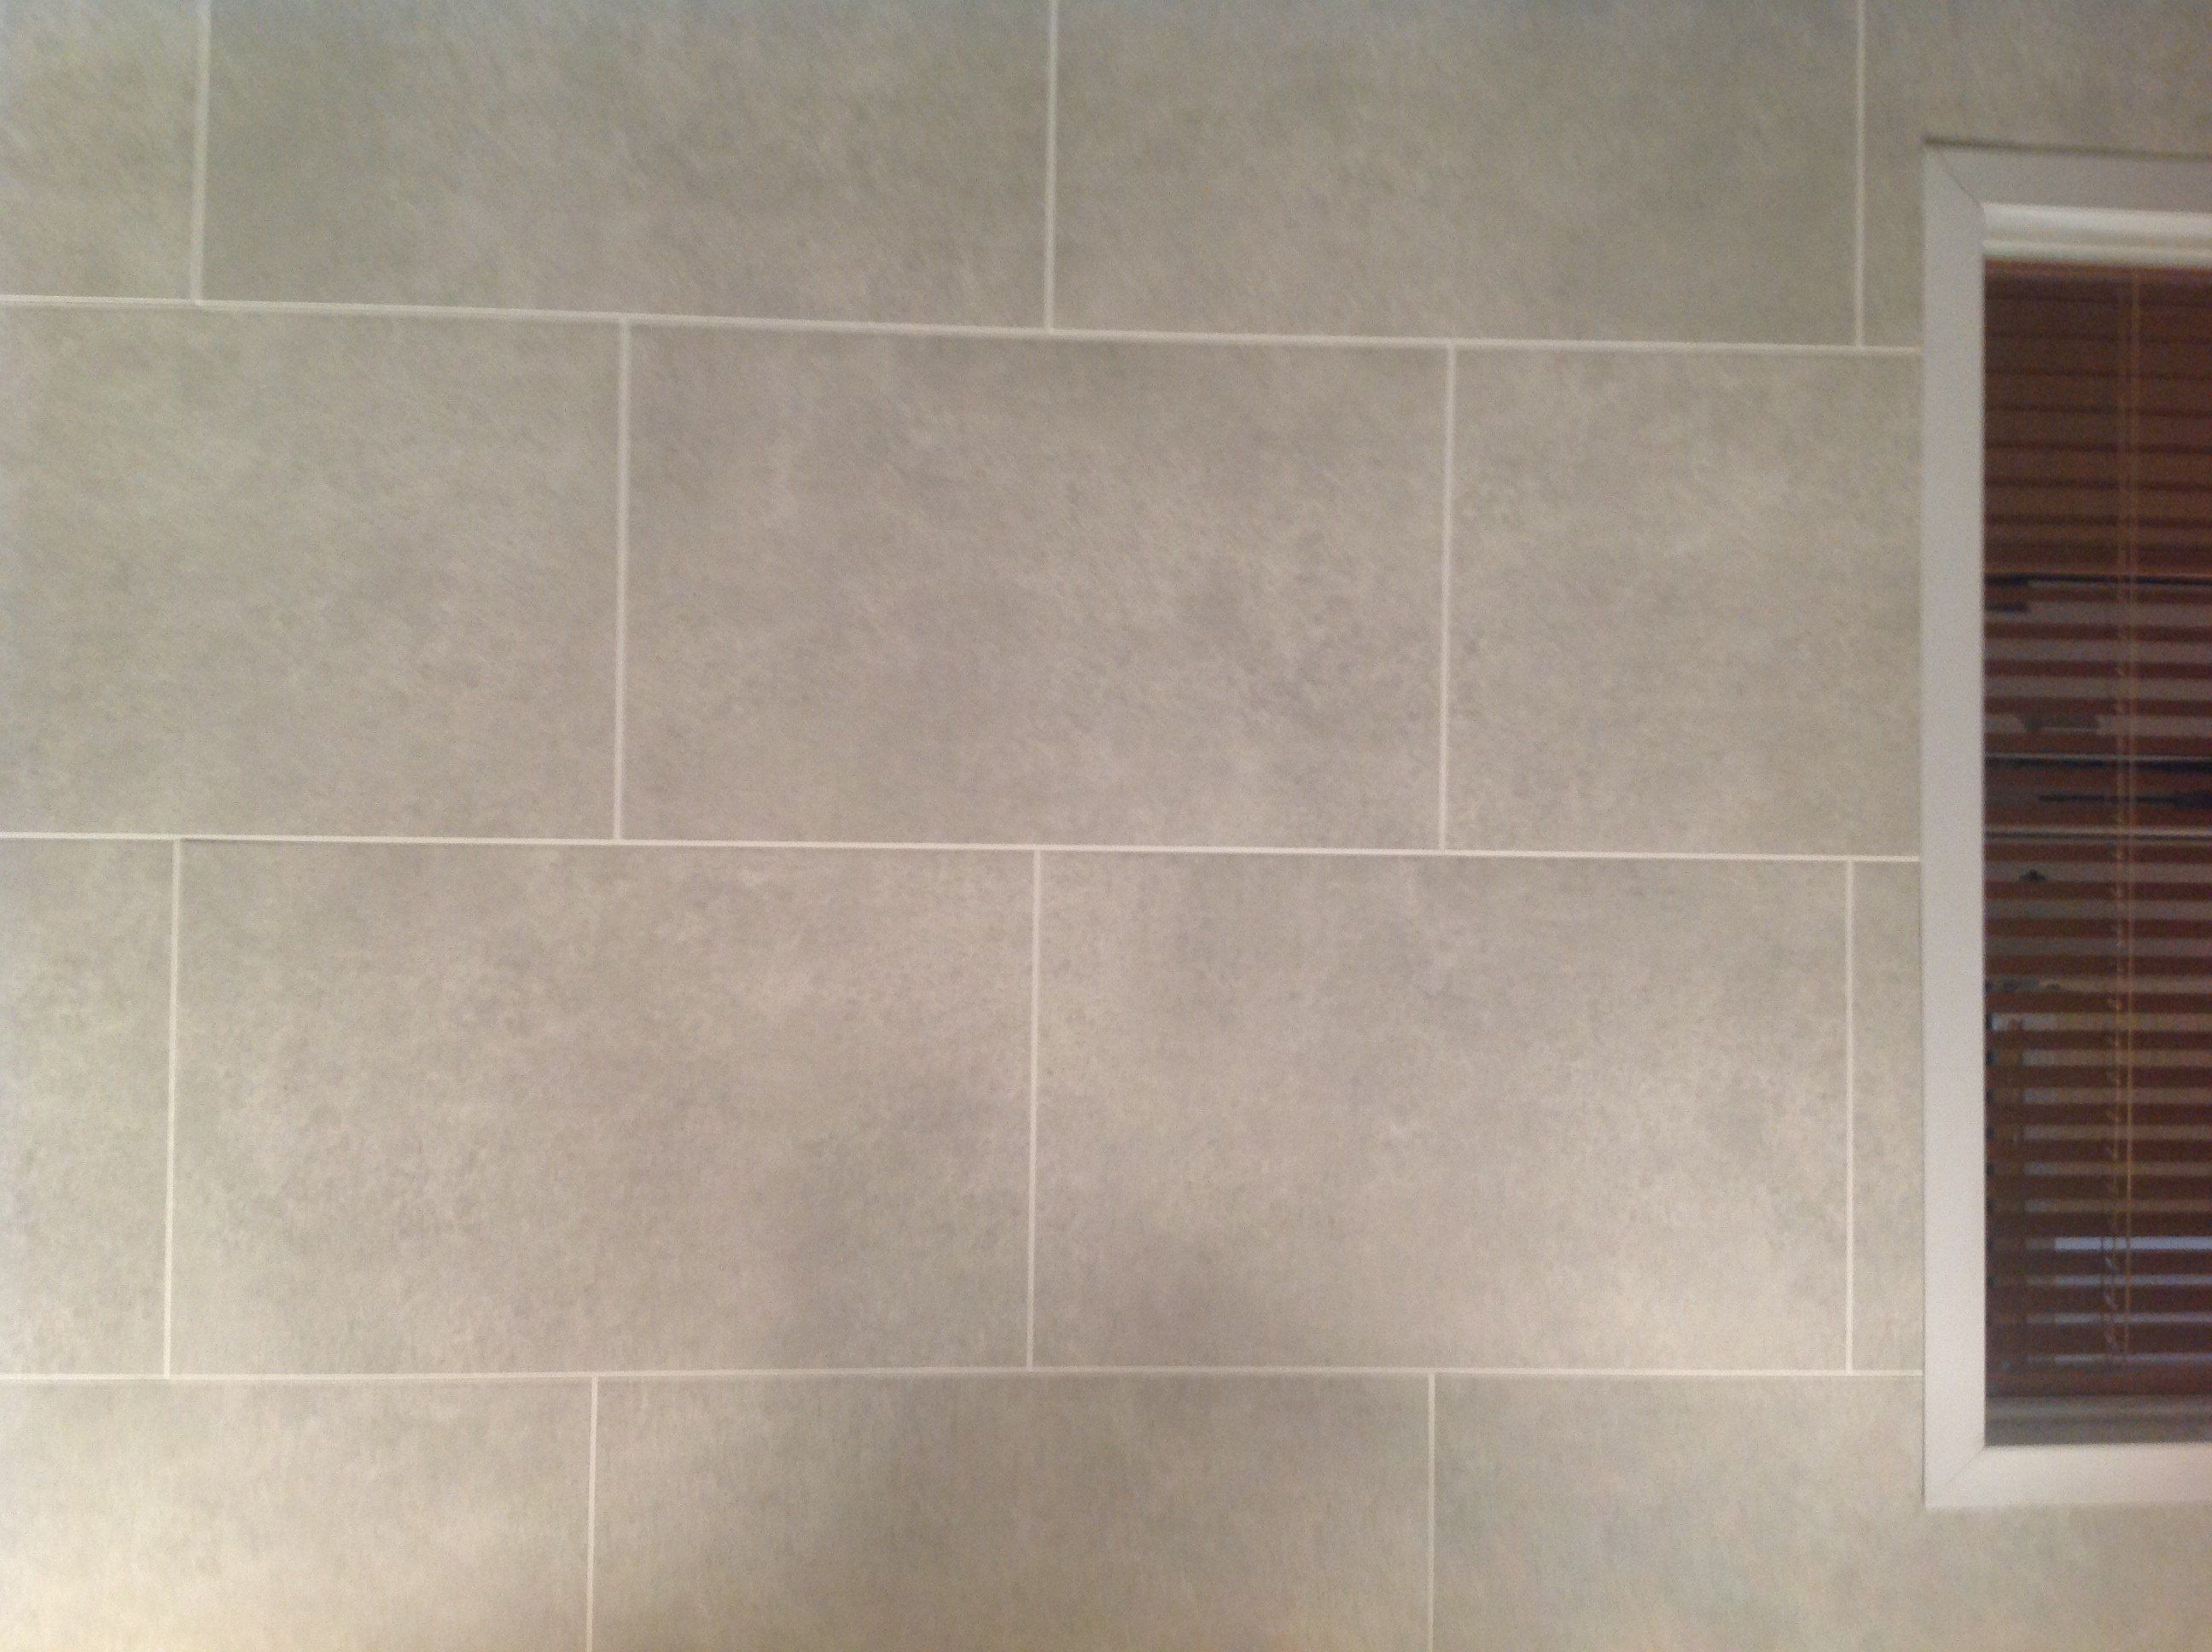 latest posts under bathroom wall tile ideas pinterest tile latest posts under bathroom wall tile